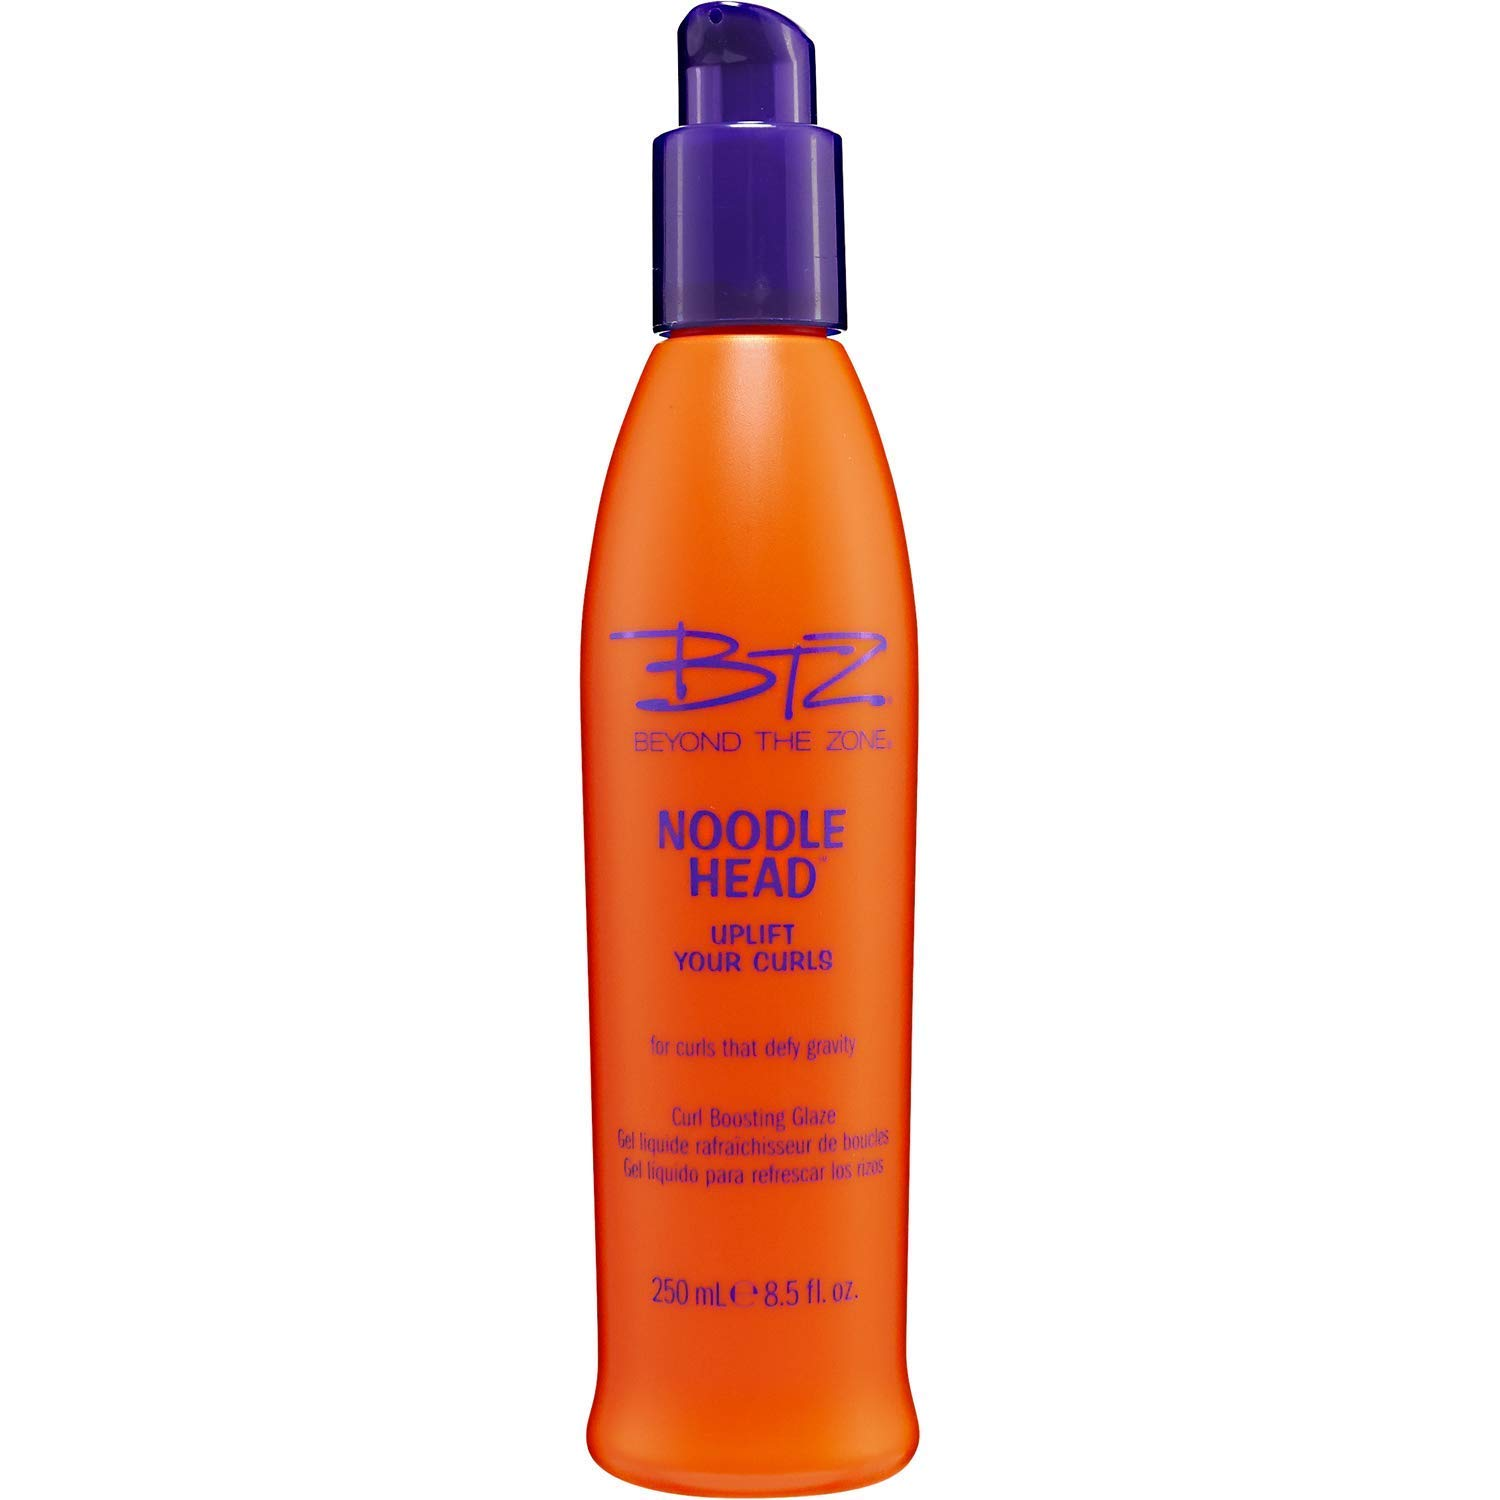 Beyond the Zone Curl Boost Glaze